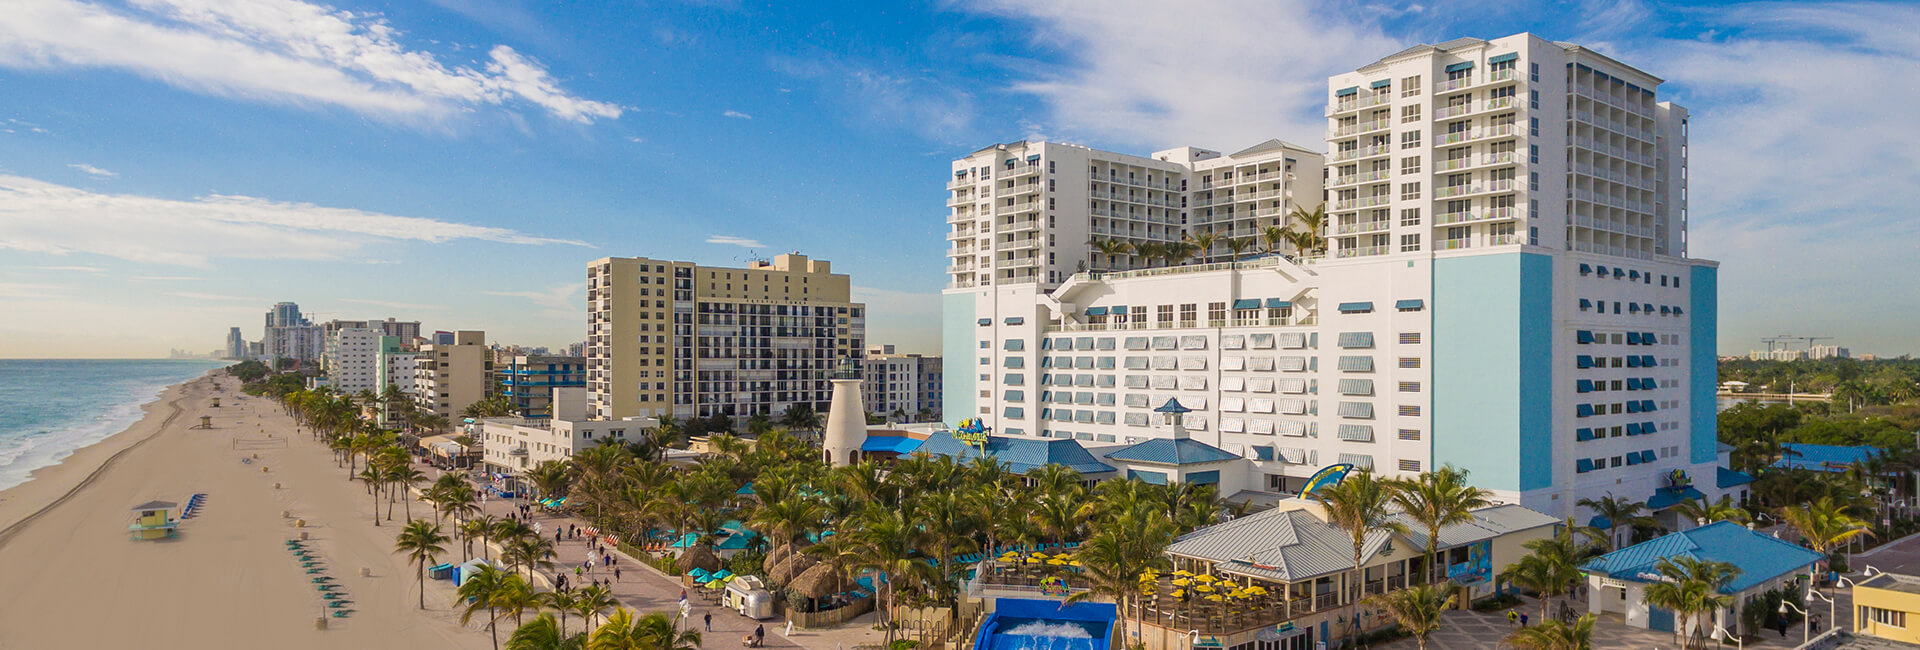 Margaritaville Hollywood Beach Resort Florida Resort And Hotel